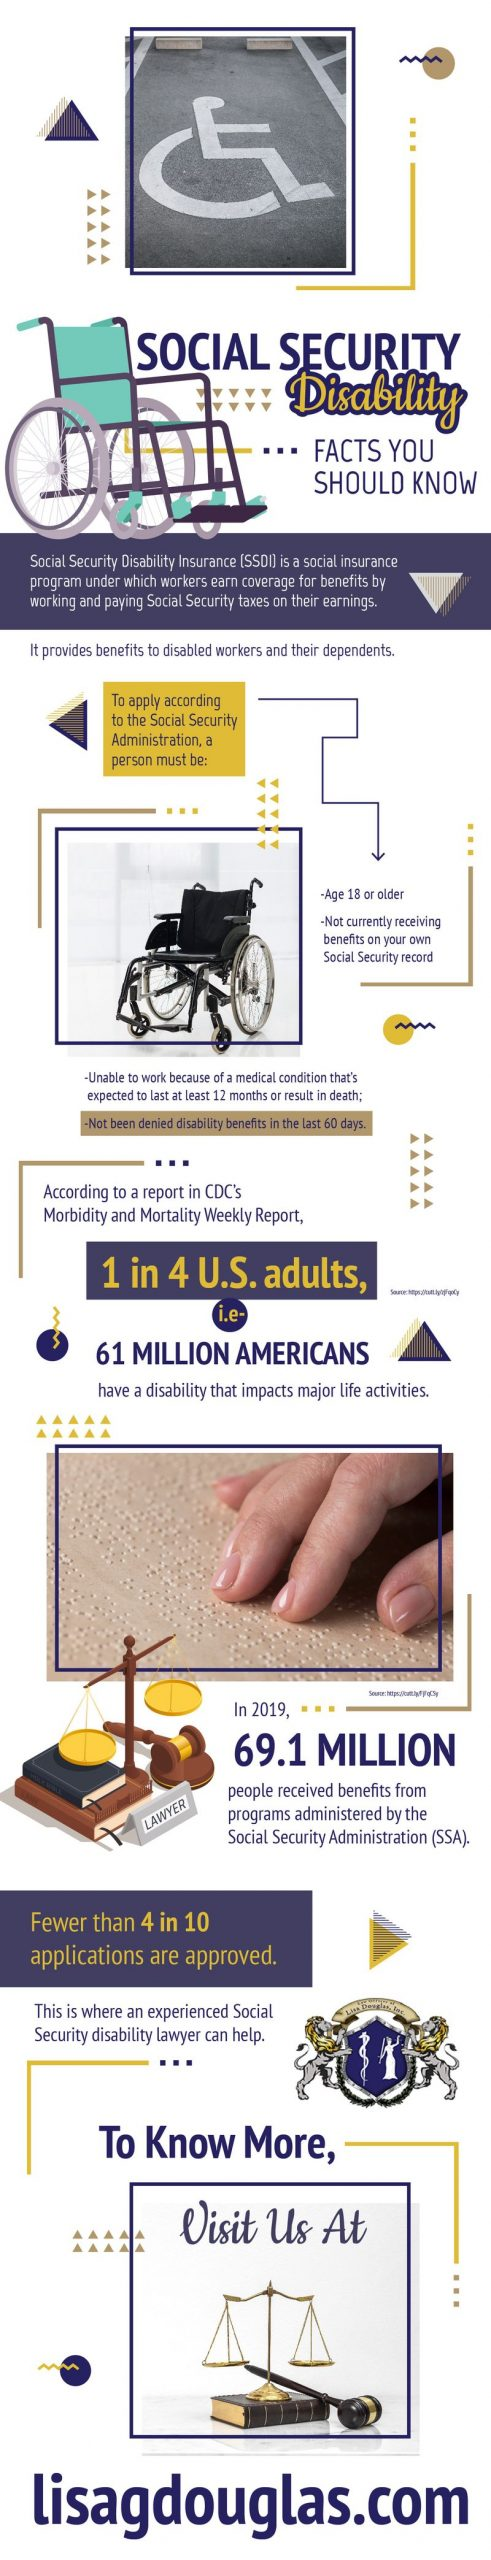 Social Security Disability Facts You Should Know